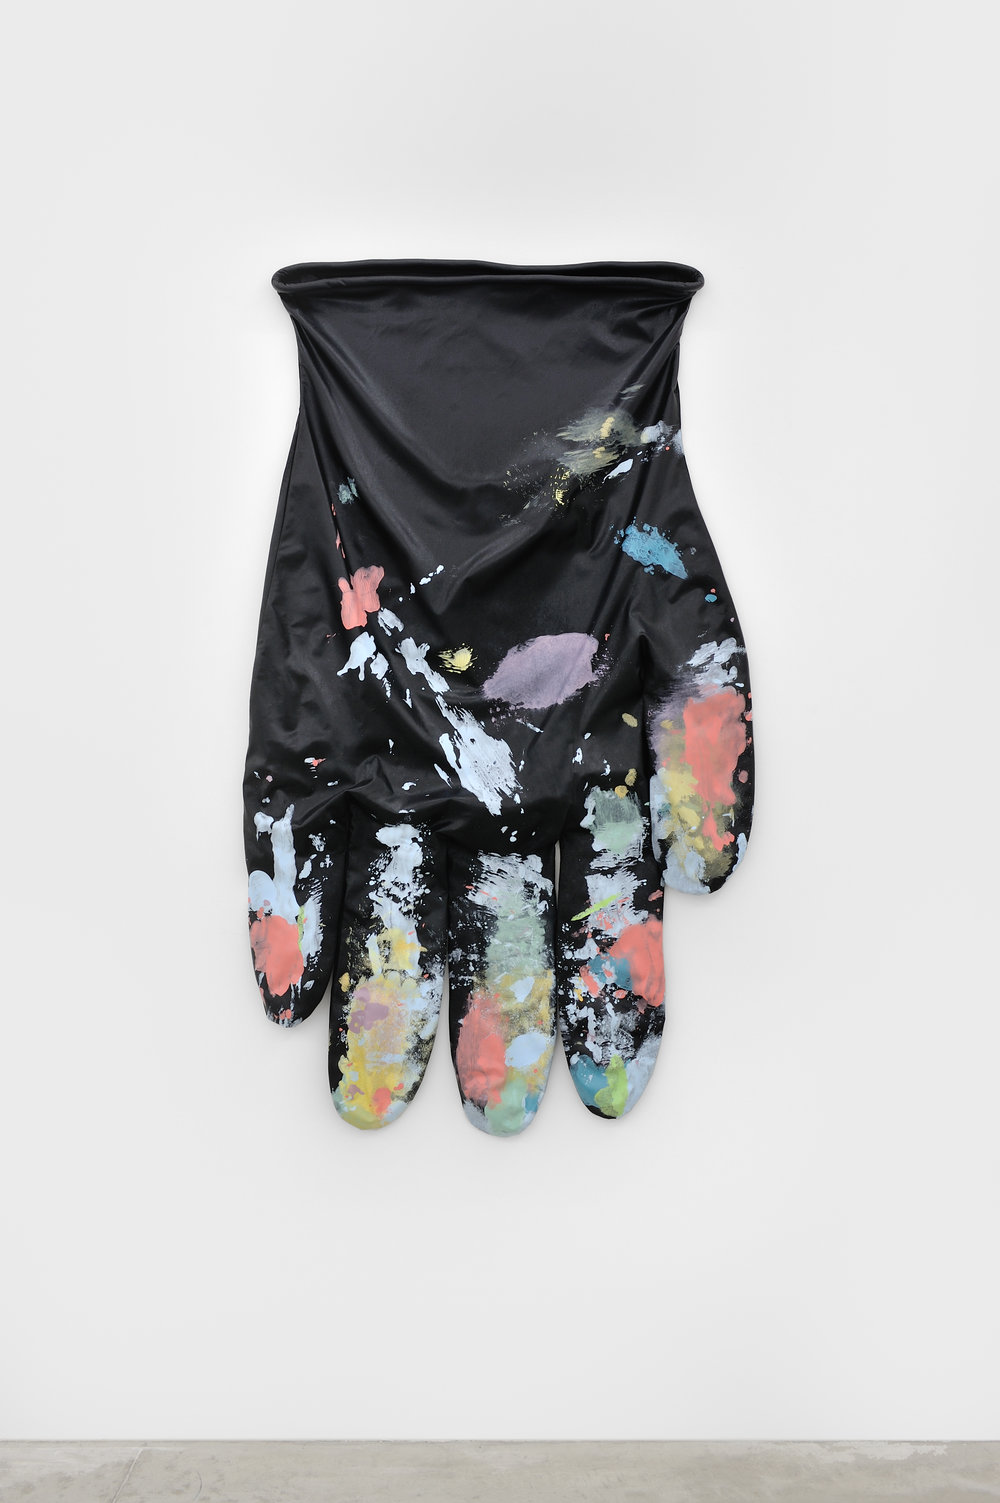 Black Glove Left #1, 2015 stretch sateen, acrylic, acrylic mediums, cotton piping, armature wire 178 x 106,7 cm - 70 x 42 inches